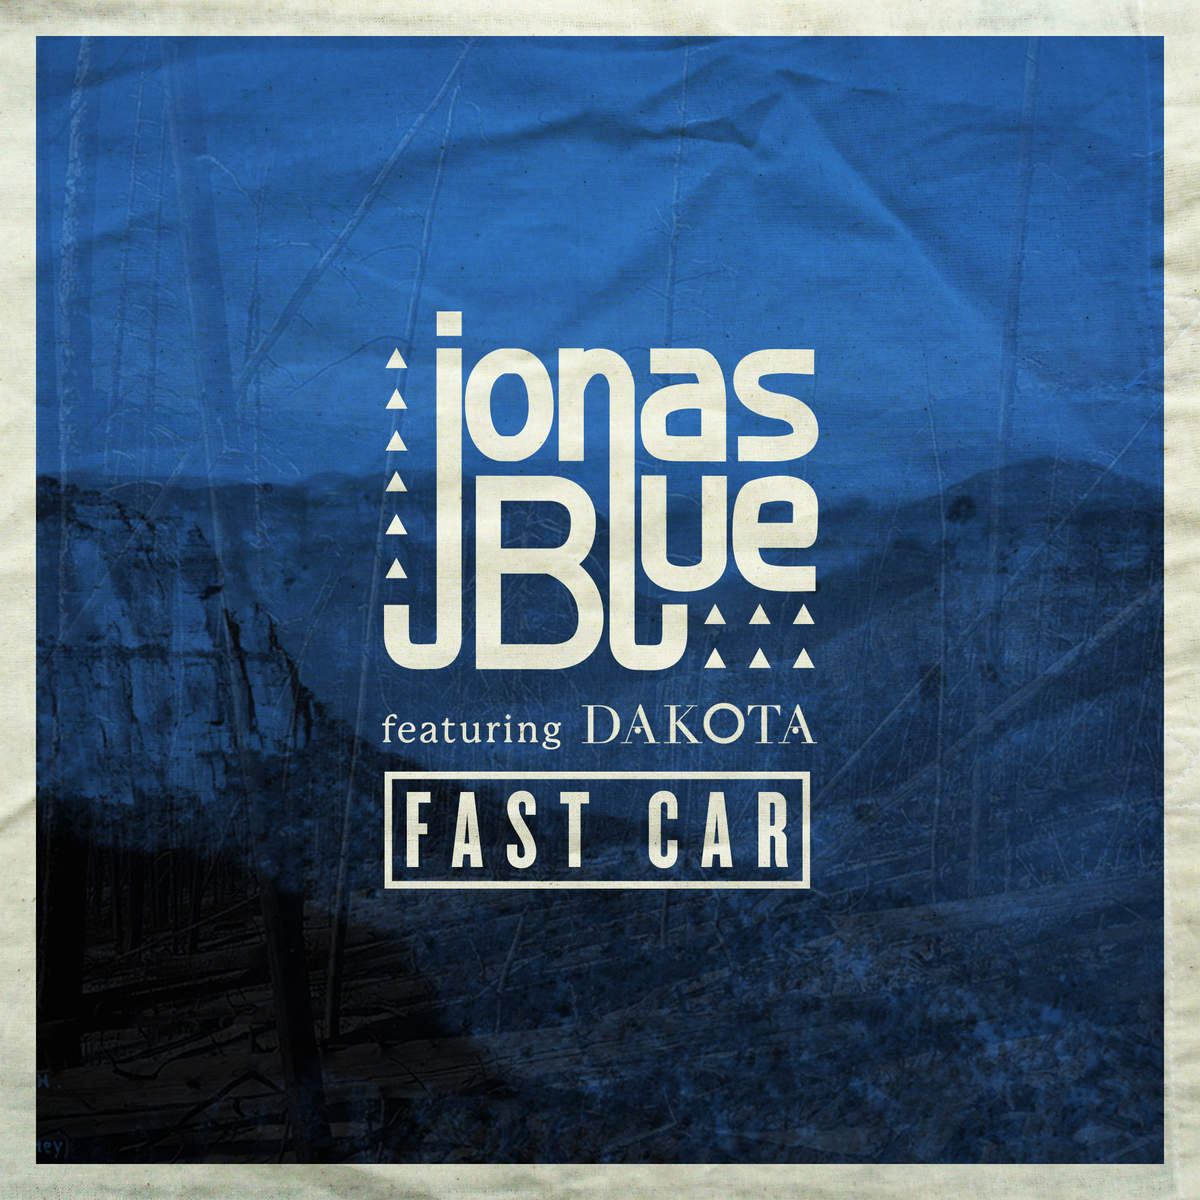 jonas_blue_feat_dakota-fast_car_s.jpg